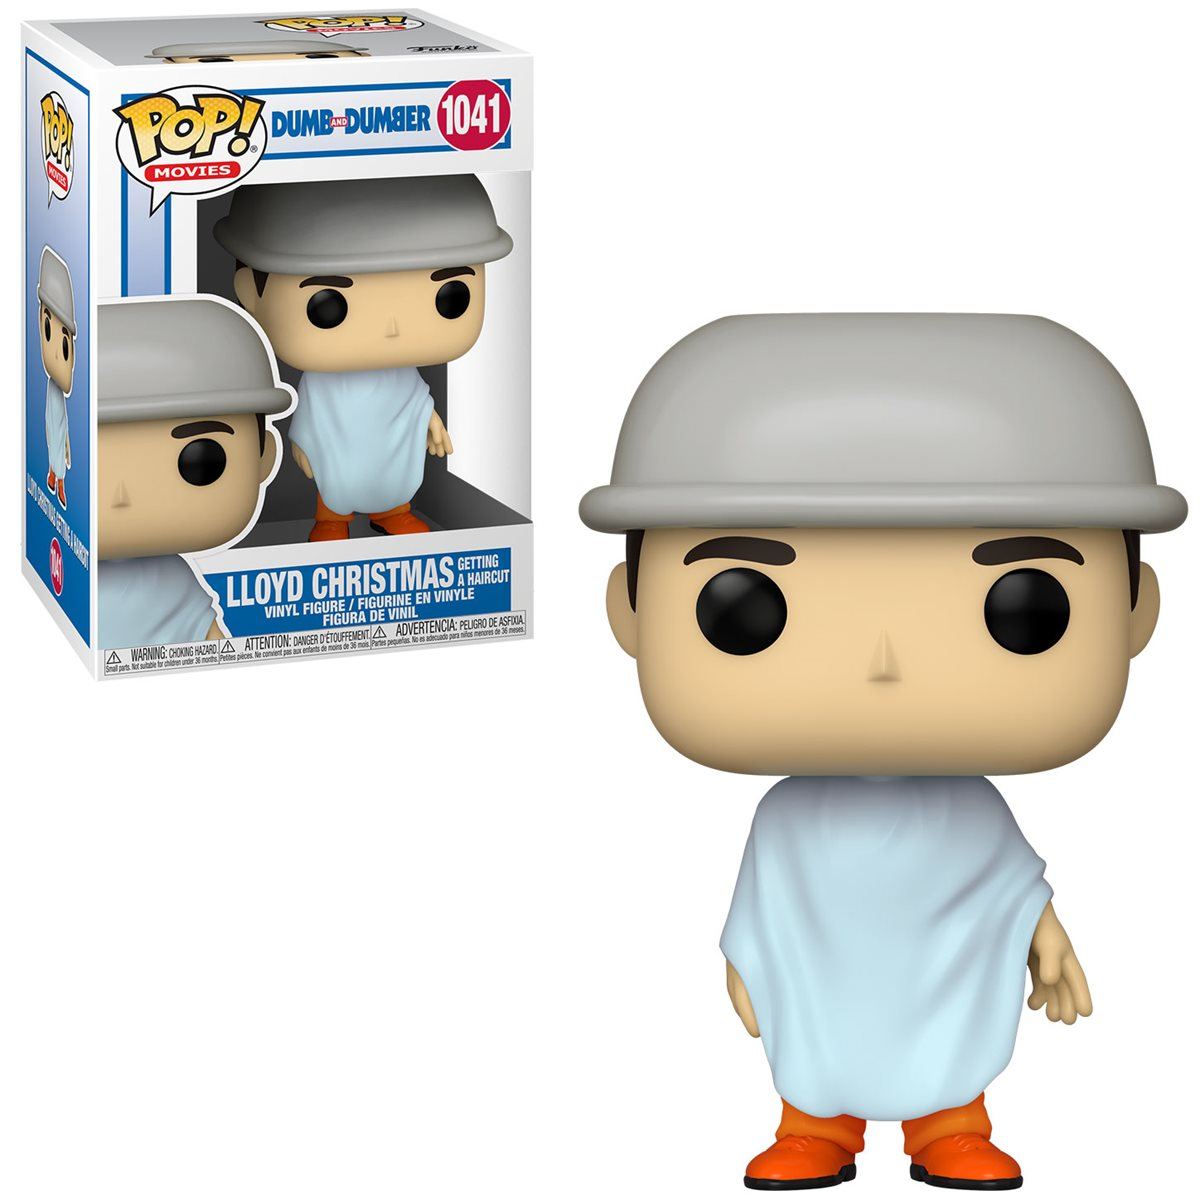 PRÉ VENDA: Funko Pop! Lloyd Getting Haircut: Debi & Loide (Dumb and Dumber)  #1041 - Funko